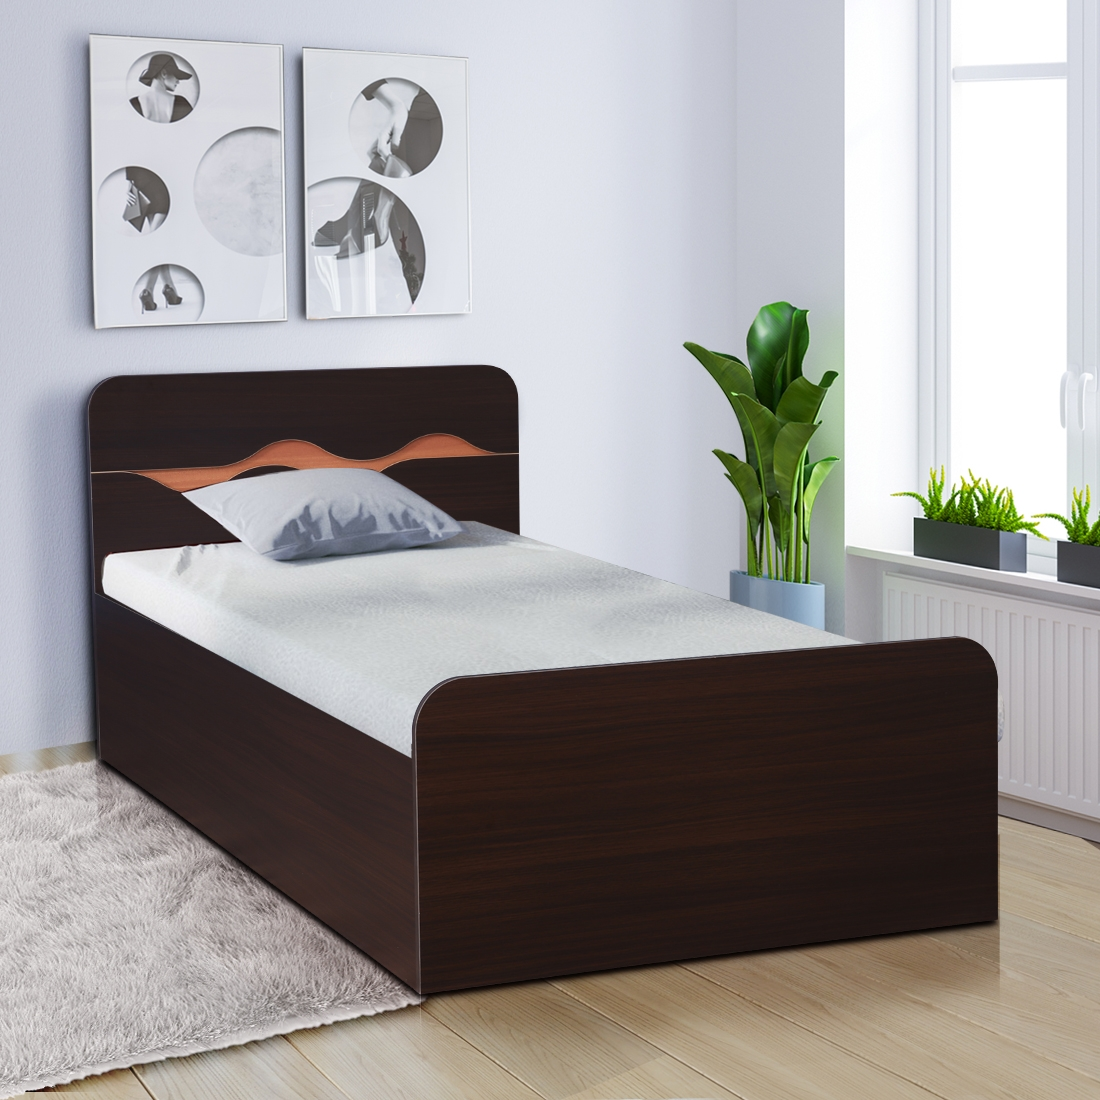 Buy Swirl Engineered Wood Box Storage Single Bed In Multi Color Color By Hometown Online At Best Price Hometown